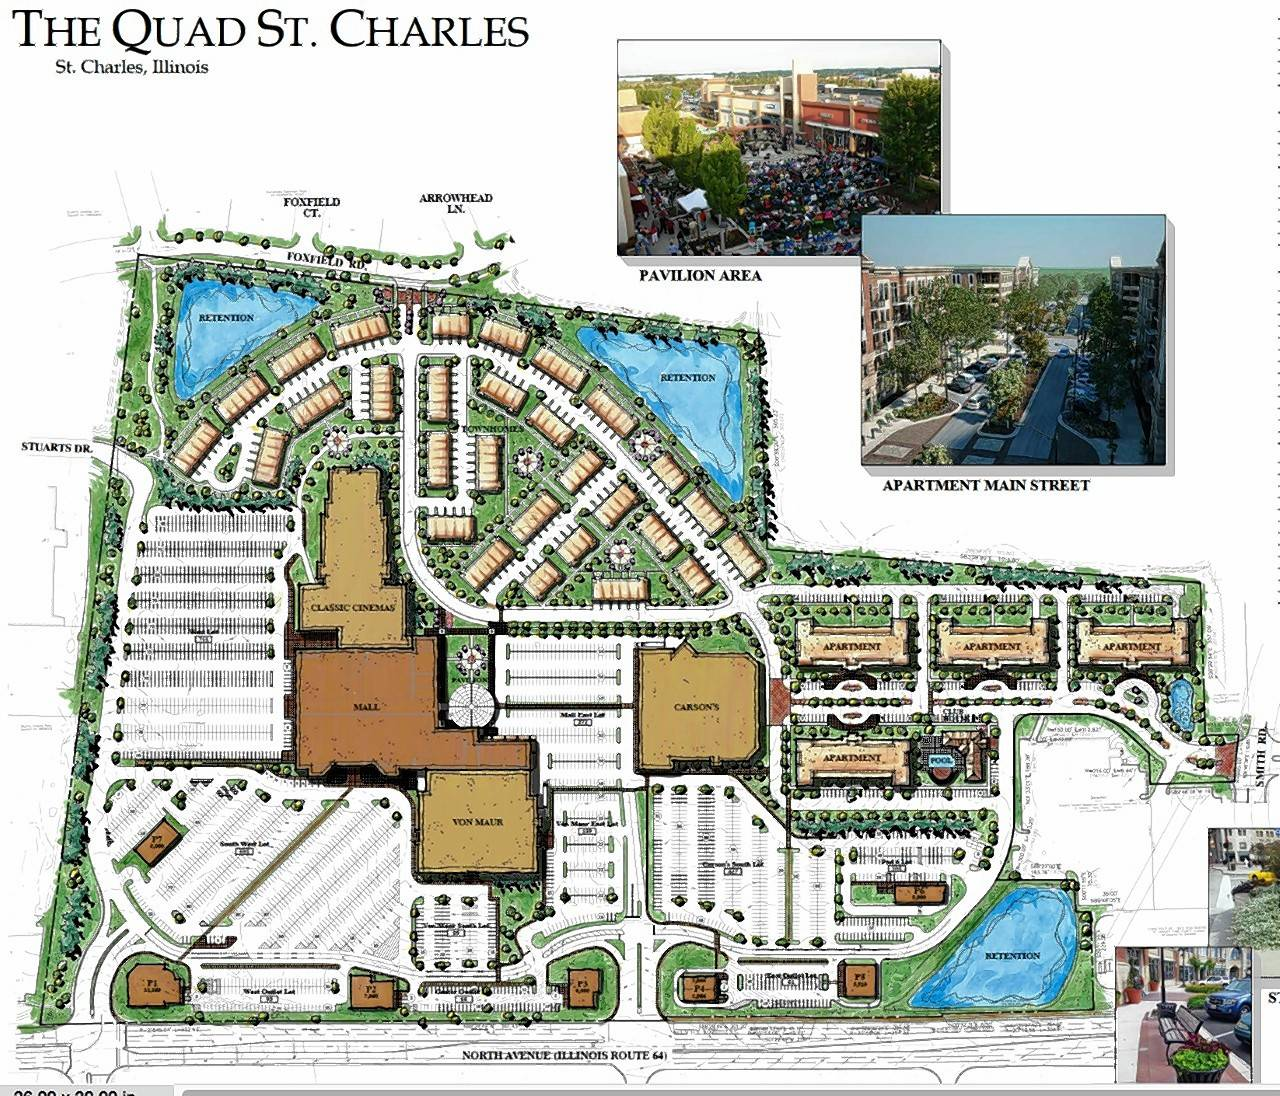 The proposed site plan for the new Charlestowne Mall/The Quad shows townhouses to the north and new apartments on the east end with a much smaller mall building remaining.